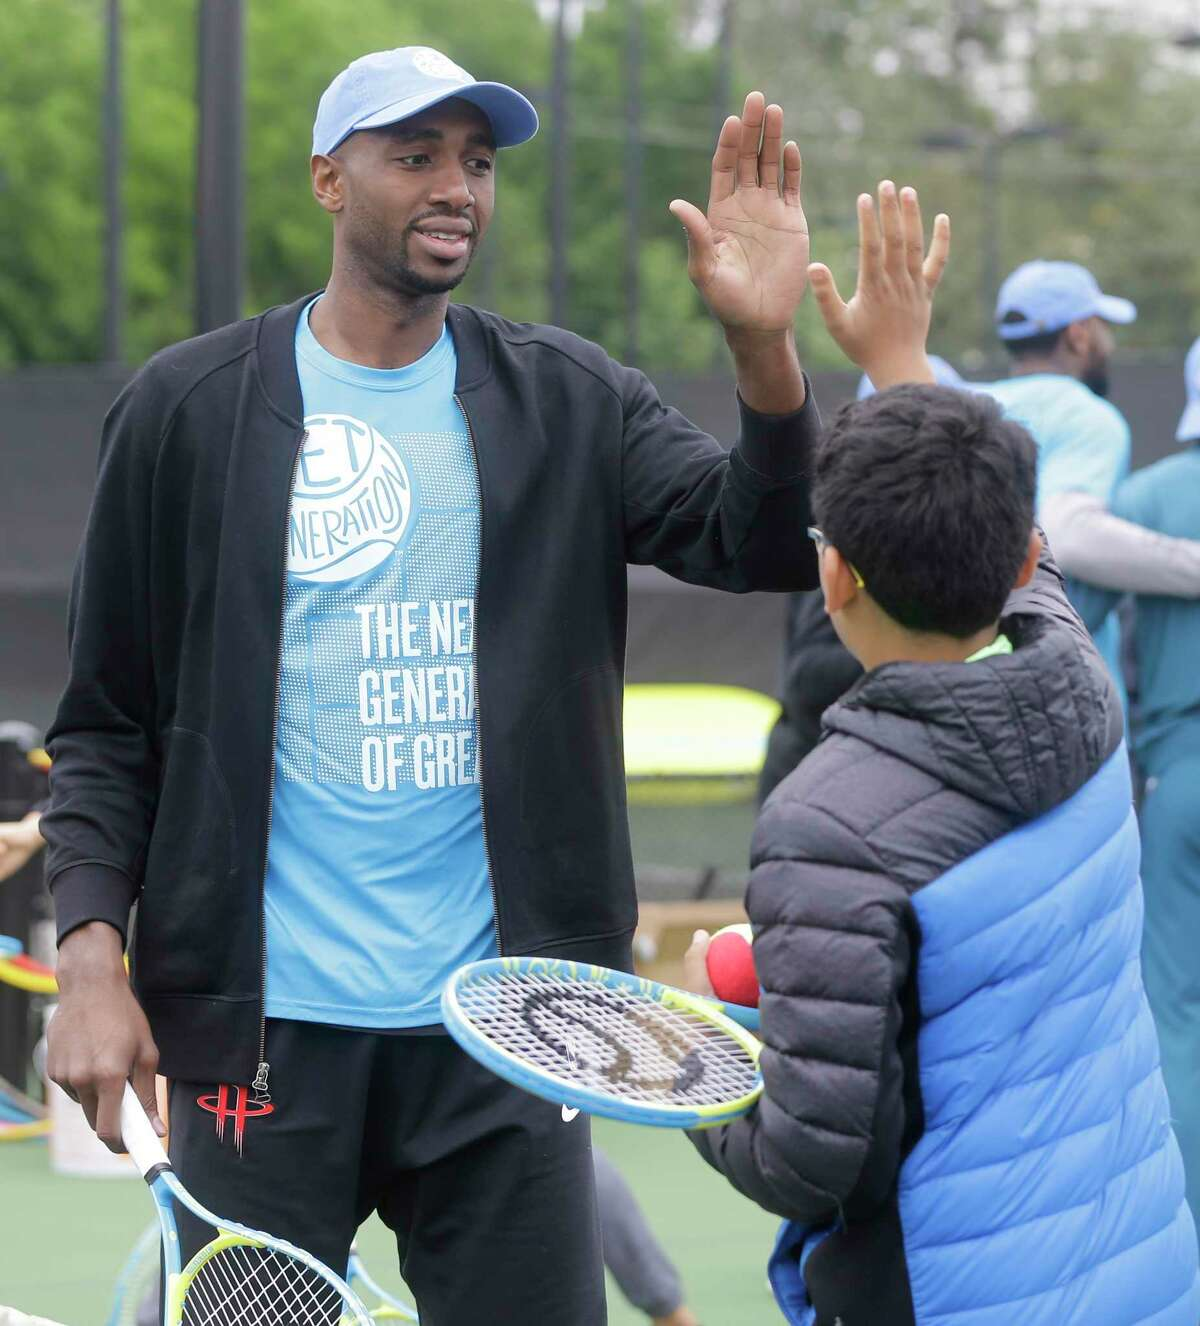 Houston Rockets player Luc Mbah a Moute gives a high five to Nishant Revanur, 12, of Sugar Land at the Kids Day event during the U.S. Men's Clay Court Championship at River Oaks Country Club, 1600 River Oaks Blvd., Sunday, April 8, 2018, in Houston.